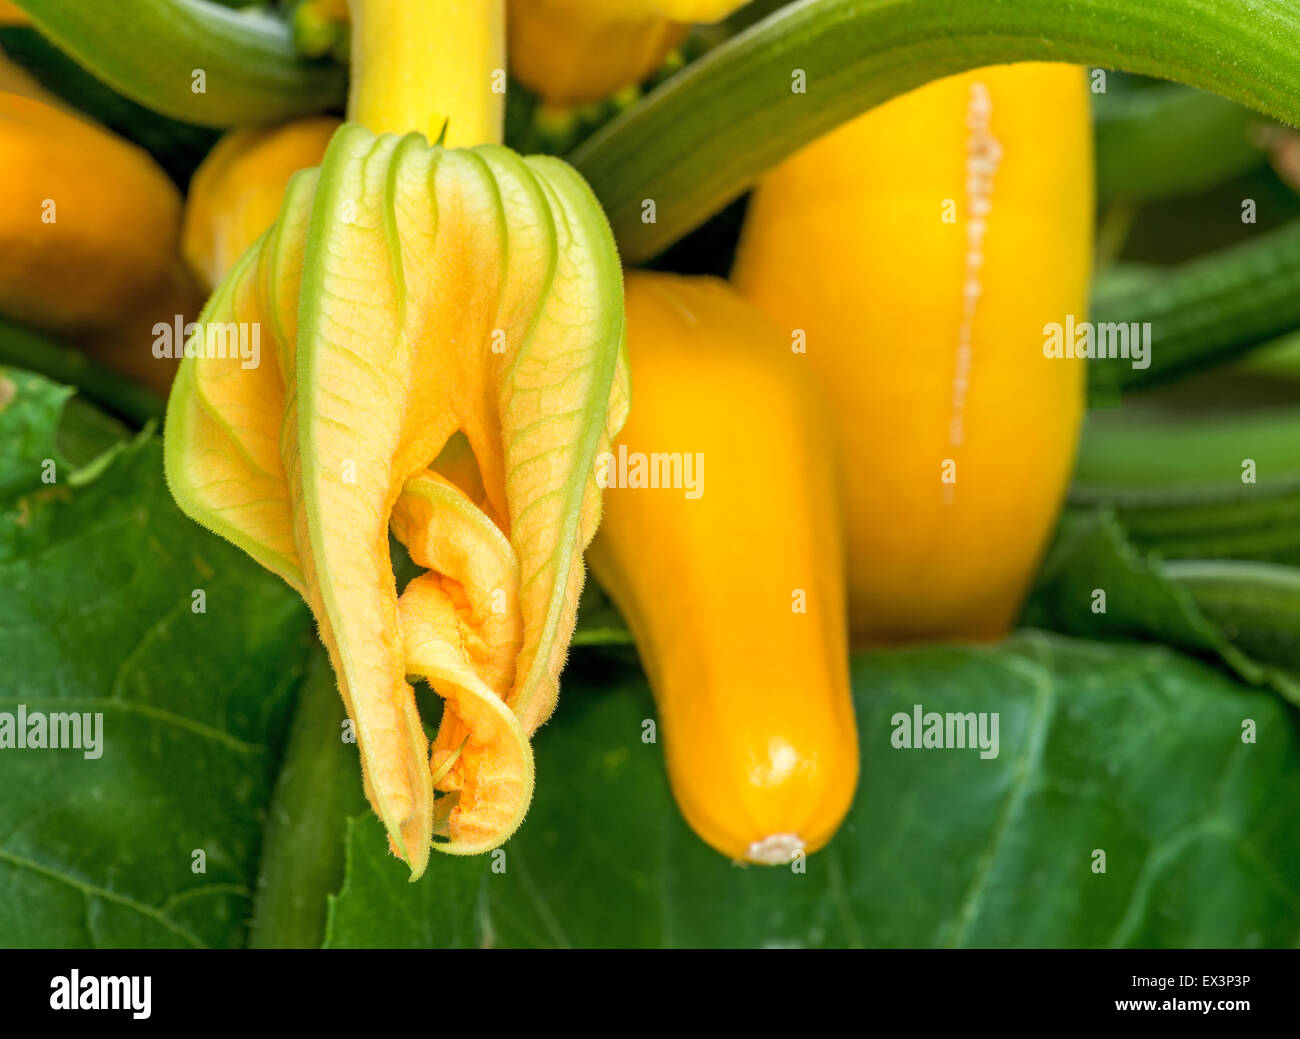 Zucchini yellow squash flower and fruit green spring spring stock zucchini yellow squash flower and fruit green spring spring vegetables vegetables plants delicately savory growing new fresh mightylinksfo